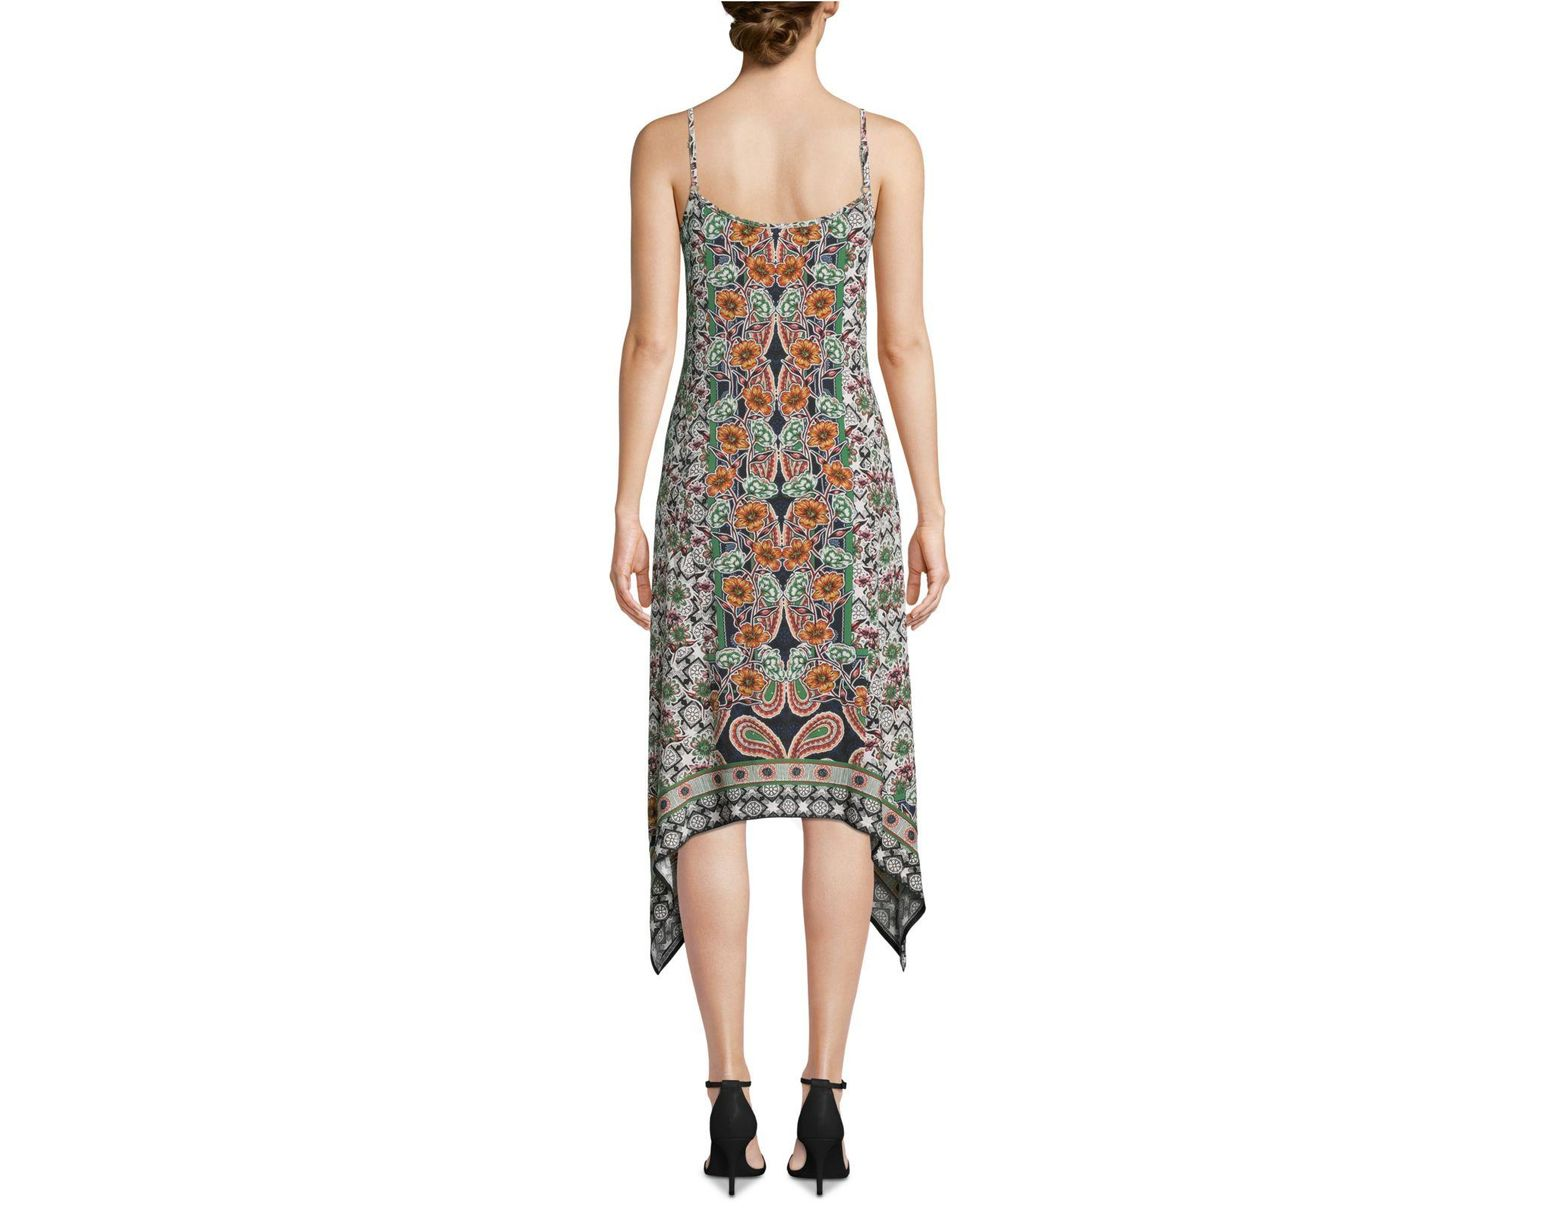 a338bdb6b9 Eci Paisley-print Slip Dress in Green - Lyst